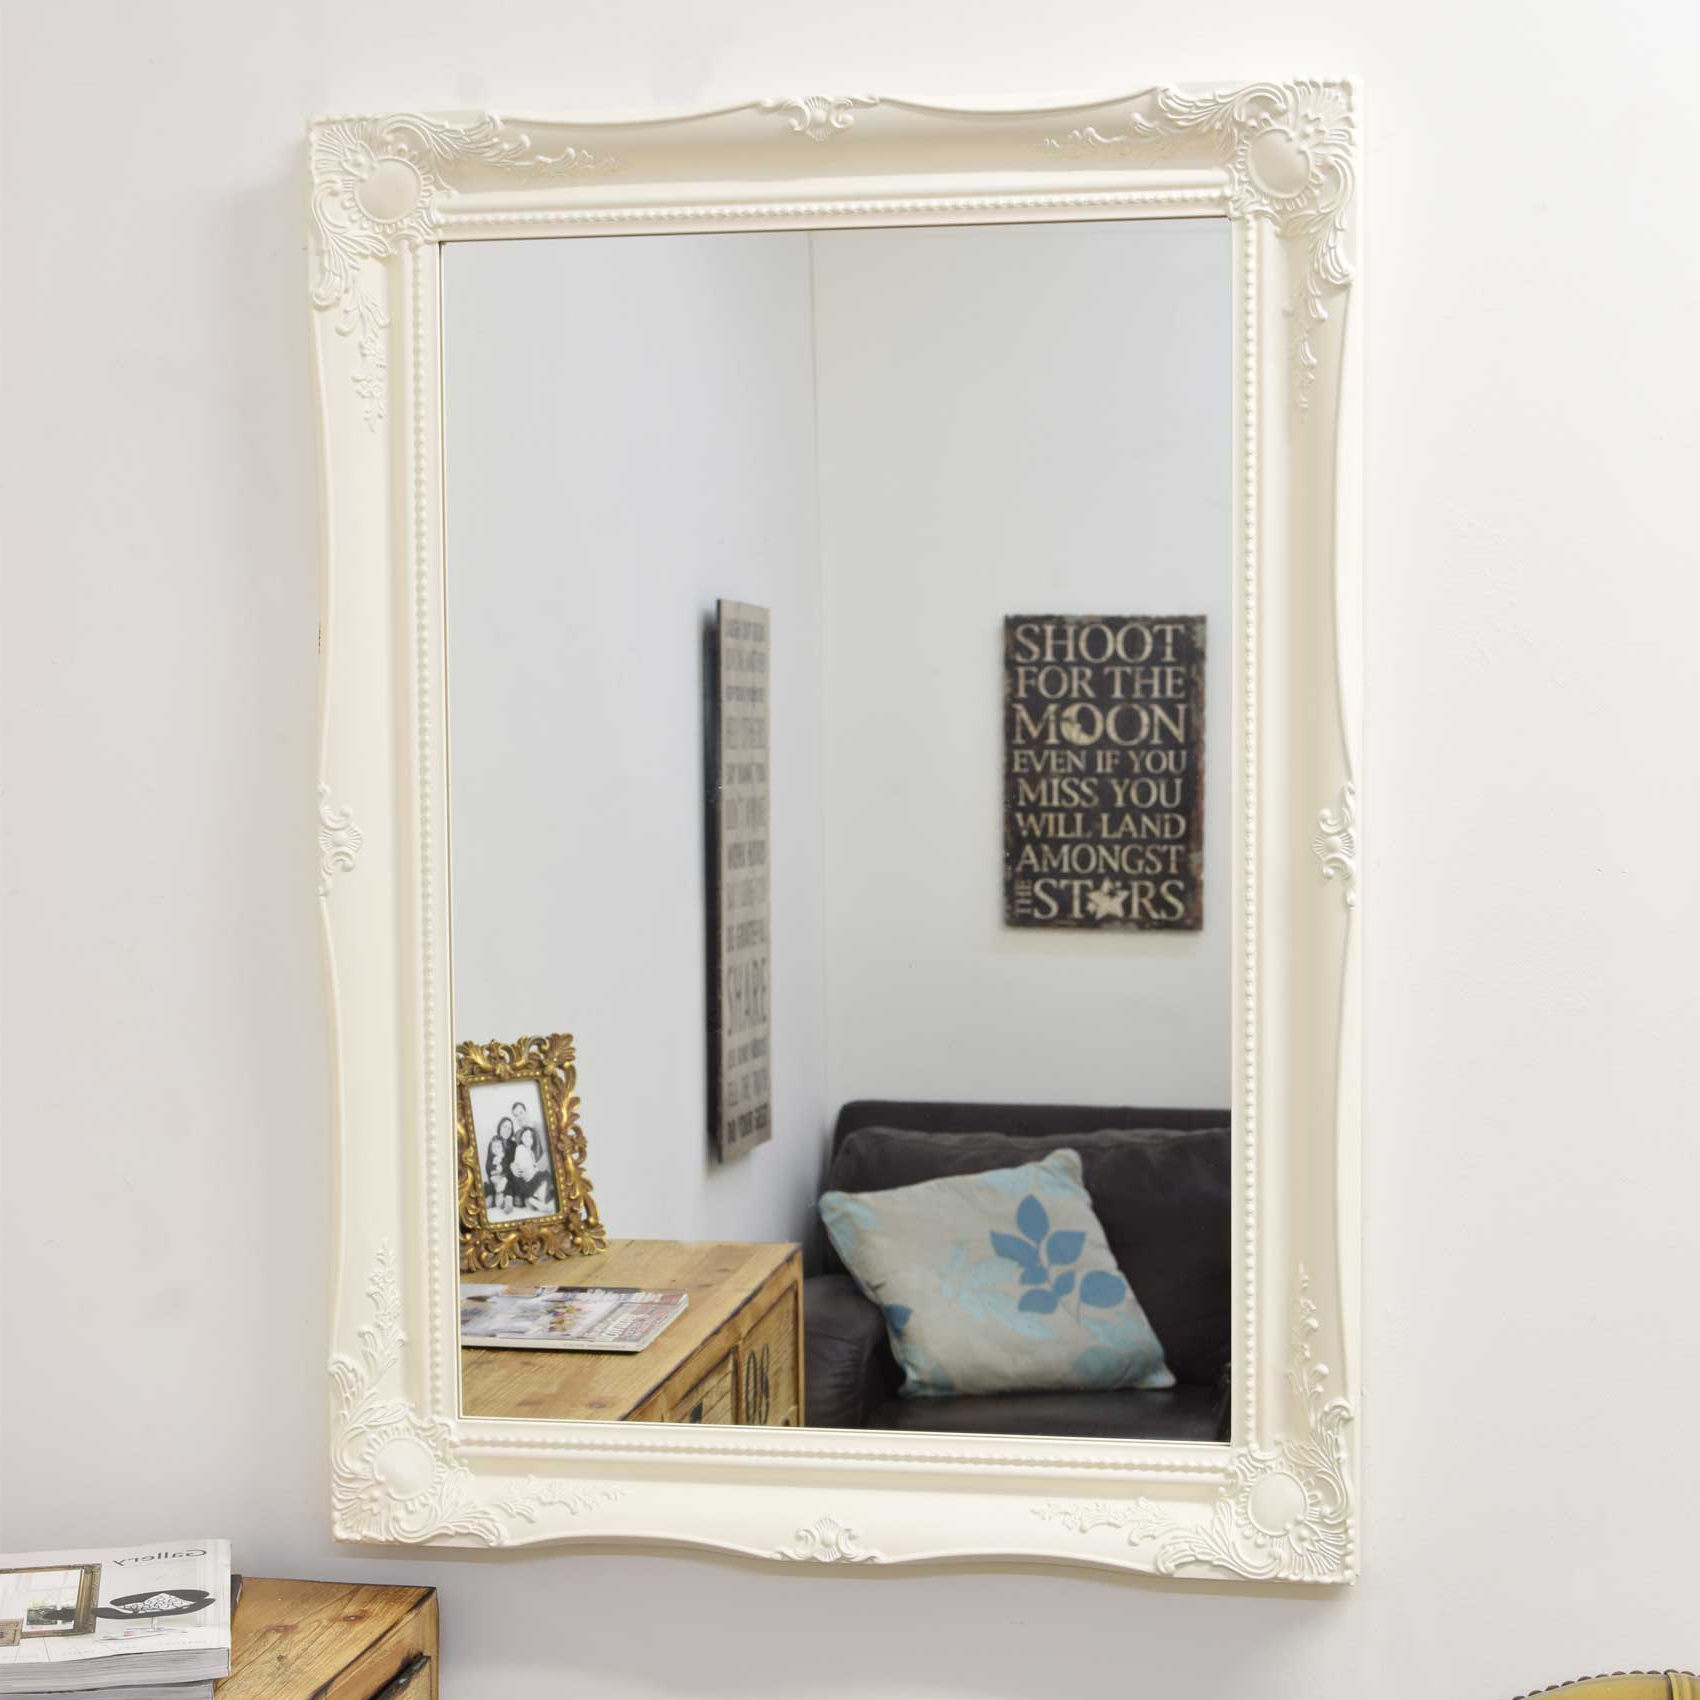 Details About Large Wall Mirror 3Ft X 2Ft2 91Cm X 66Cm White Ornate Antique Design Intended For Well Liked Large White Wall Mirrors (View 20 of 20)